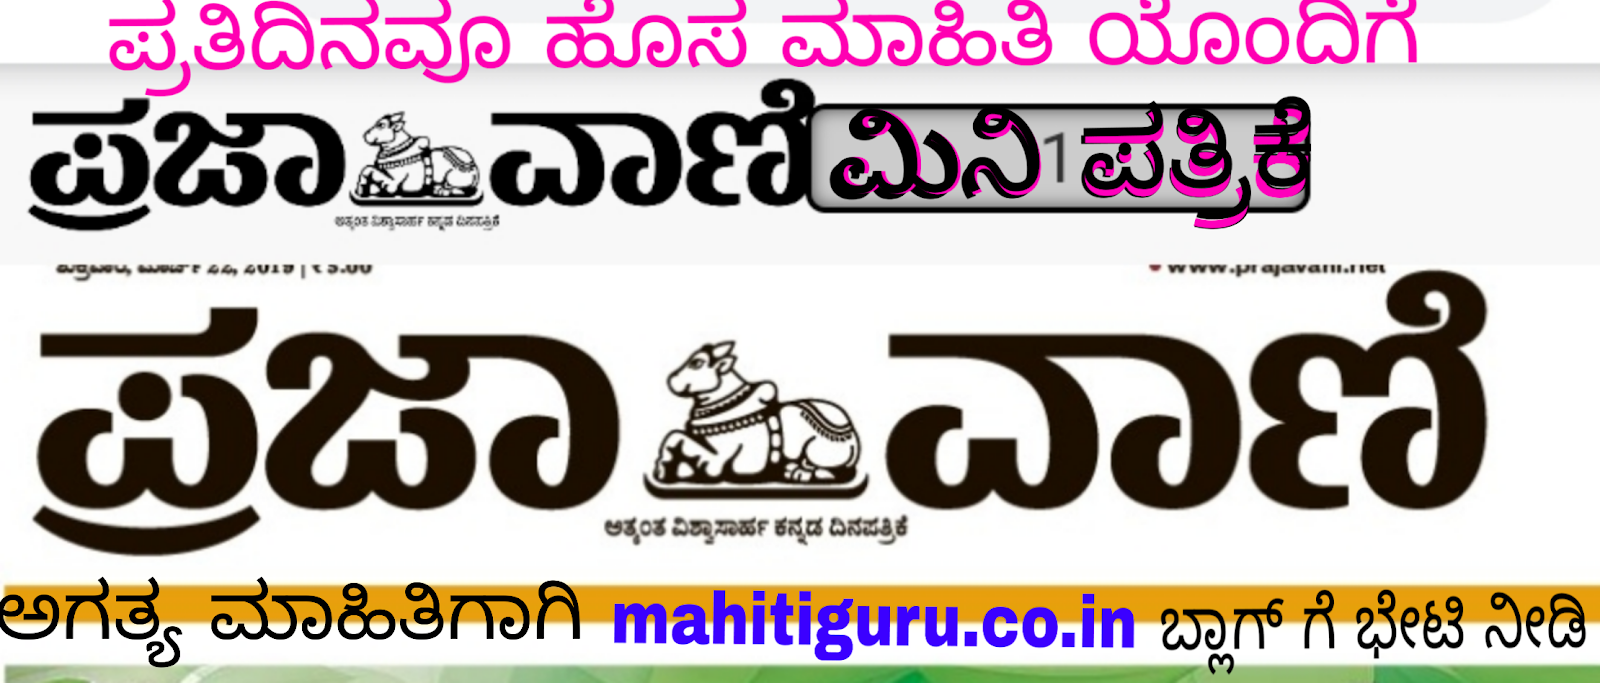 29-02-2020 Today mini prajavani